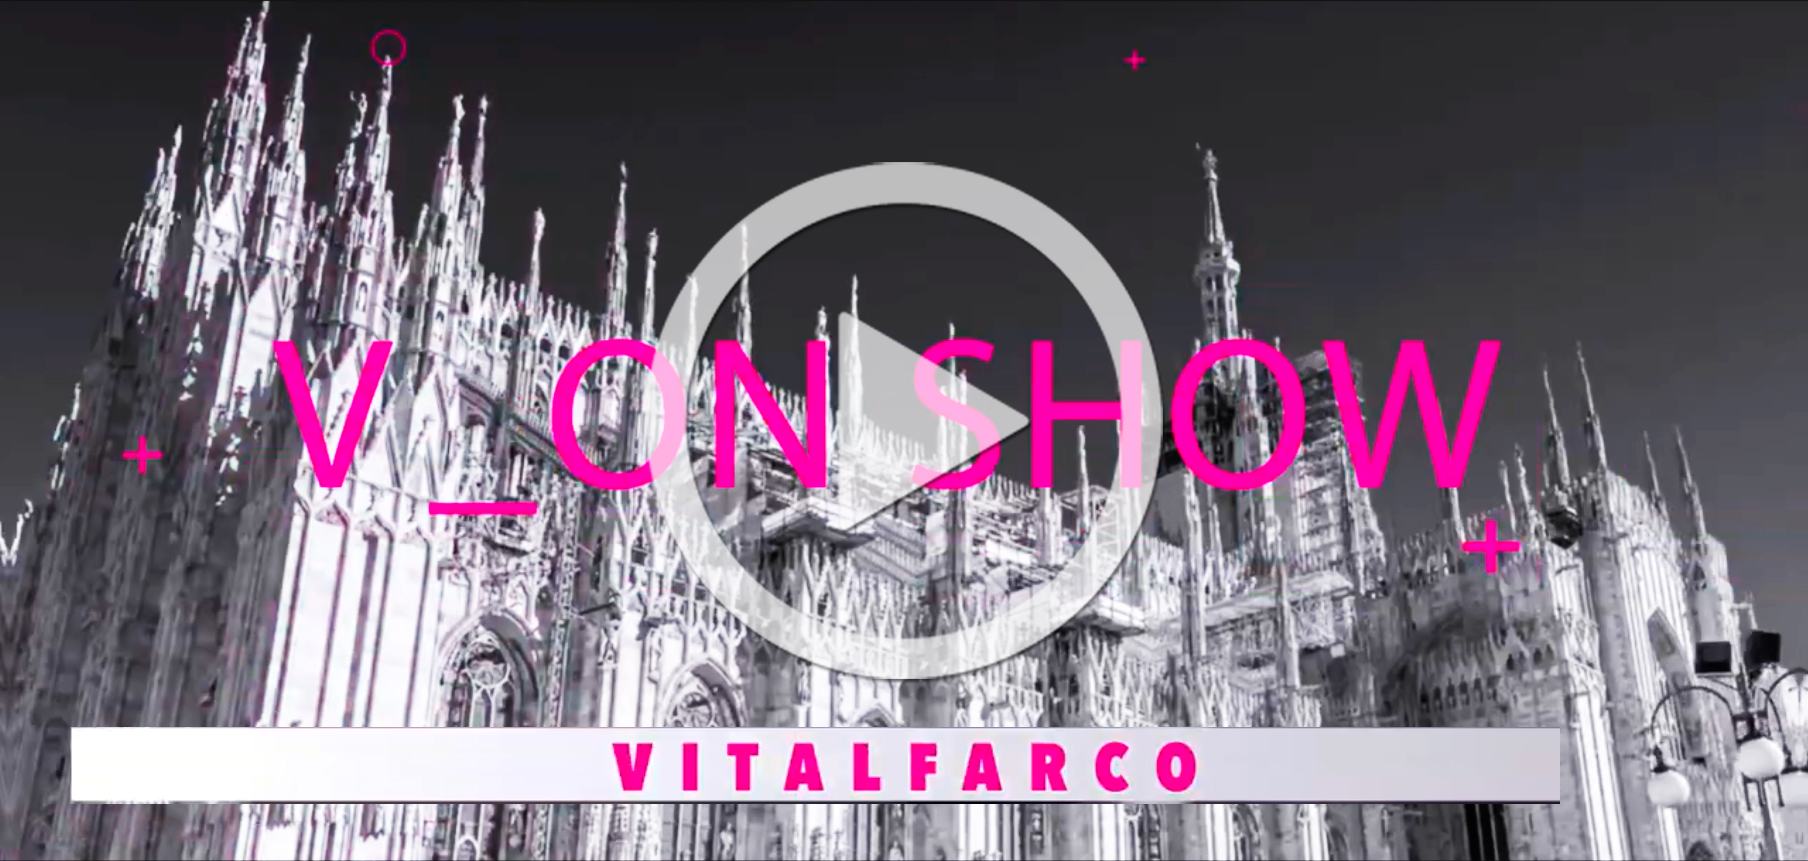 vitalfarco-v_on